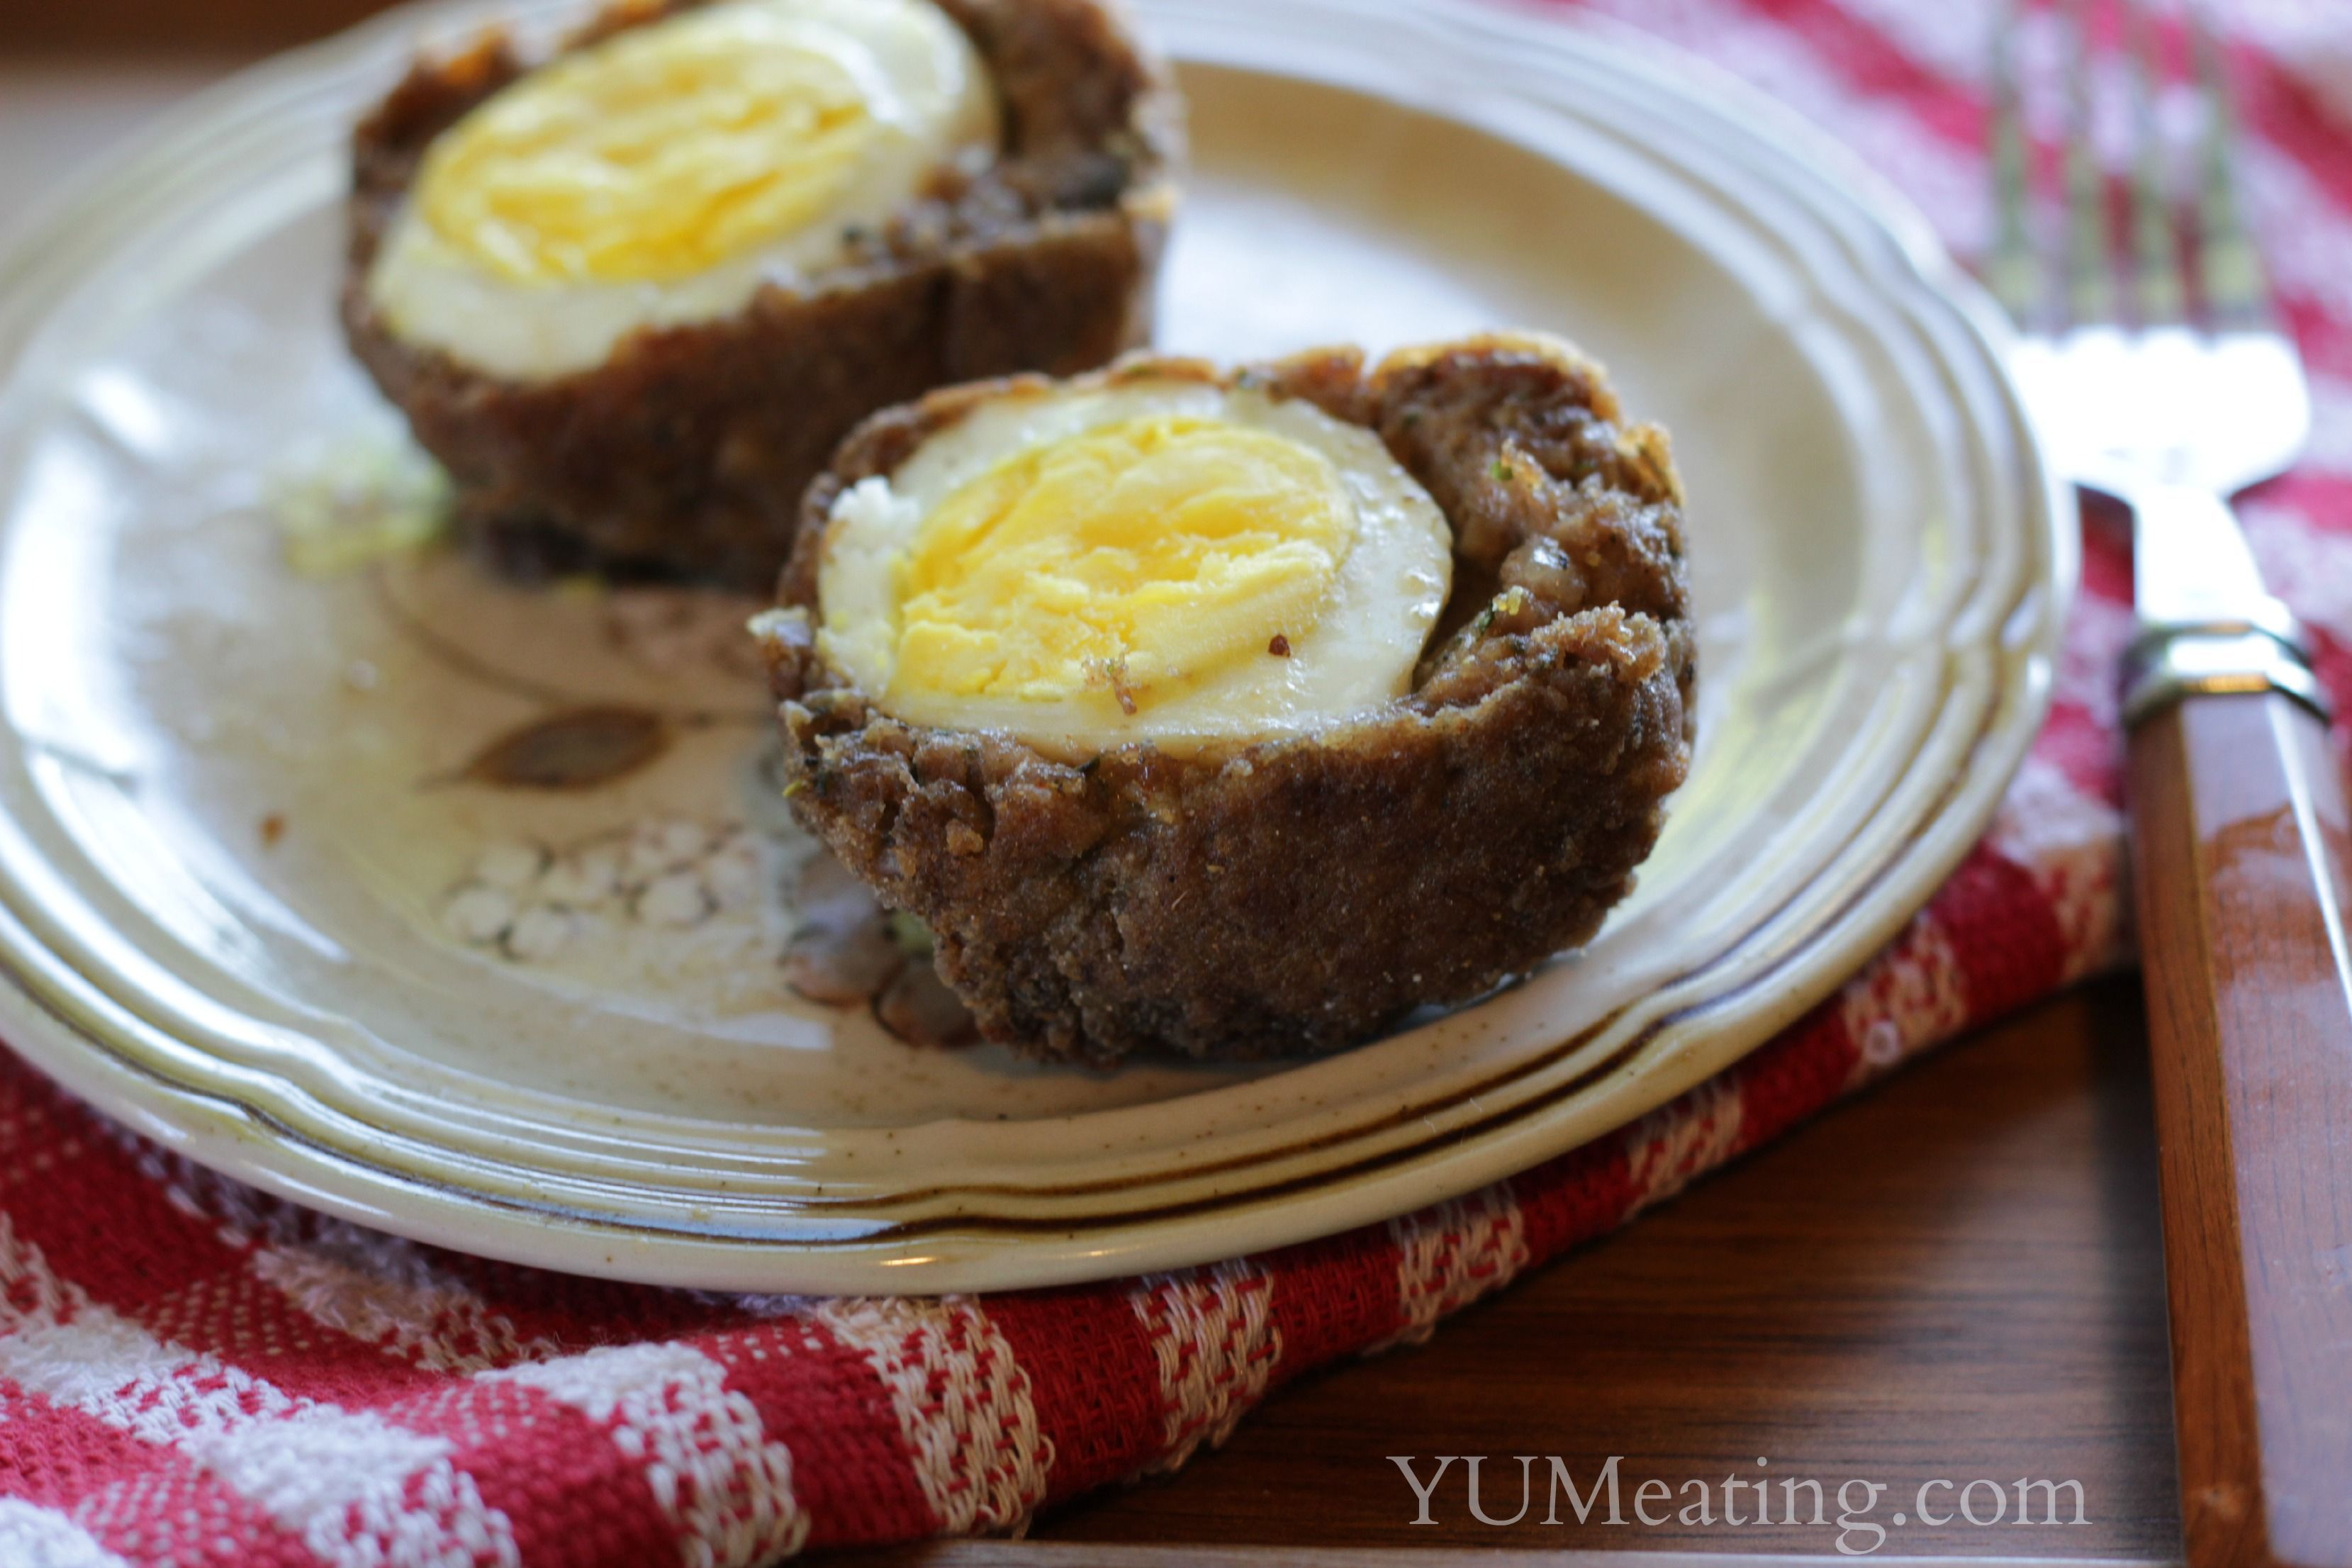 Healthier Scotch Eggs - YUM eating #scotcheggs Healthier Scotch Eggs - YUM eating #scotcheggs Healthier Scotch Eggs - YUM eating #scotcheggs Healthier Scotch Eggs - YUM eating #scotcheggs